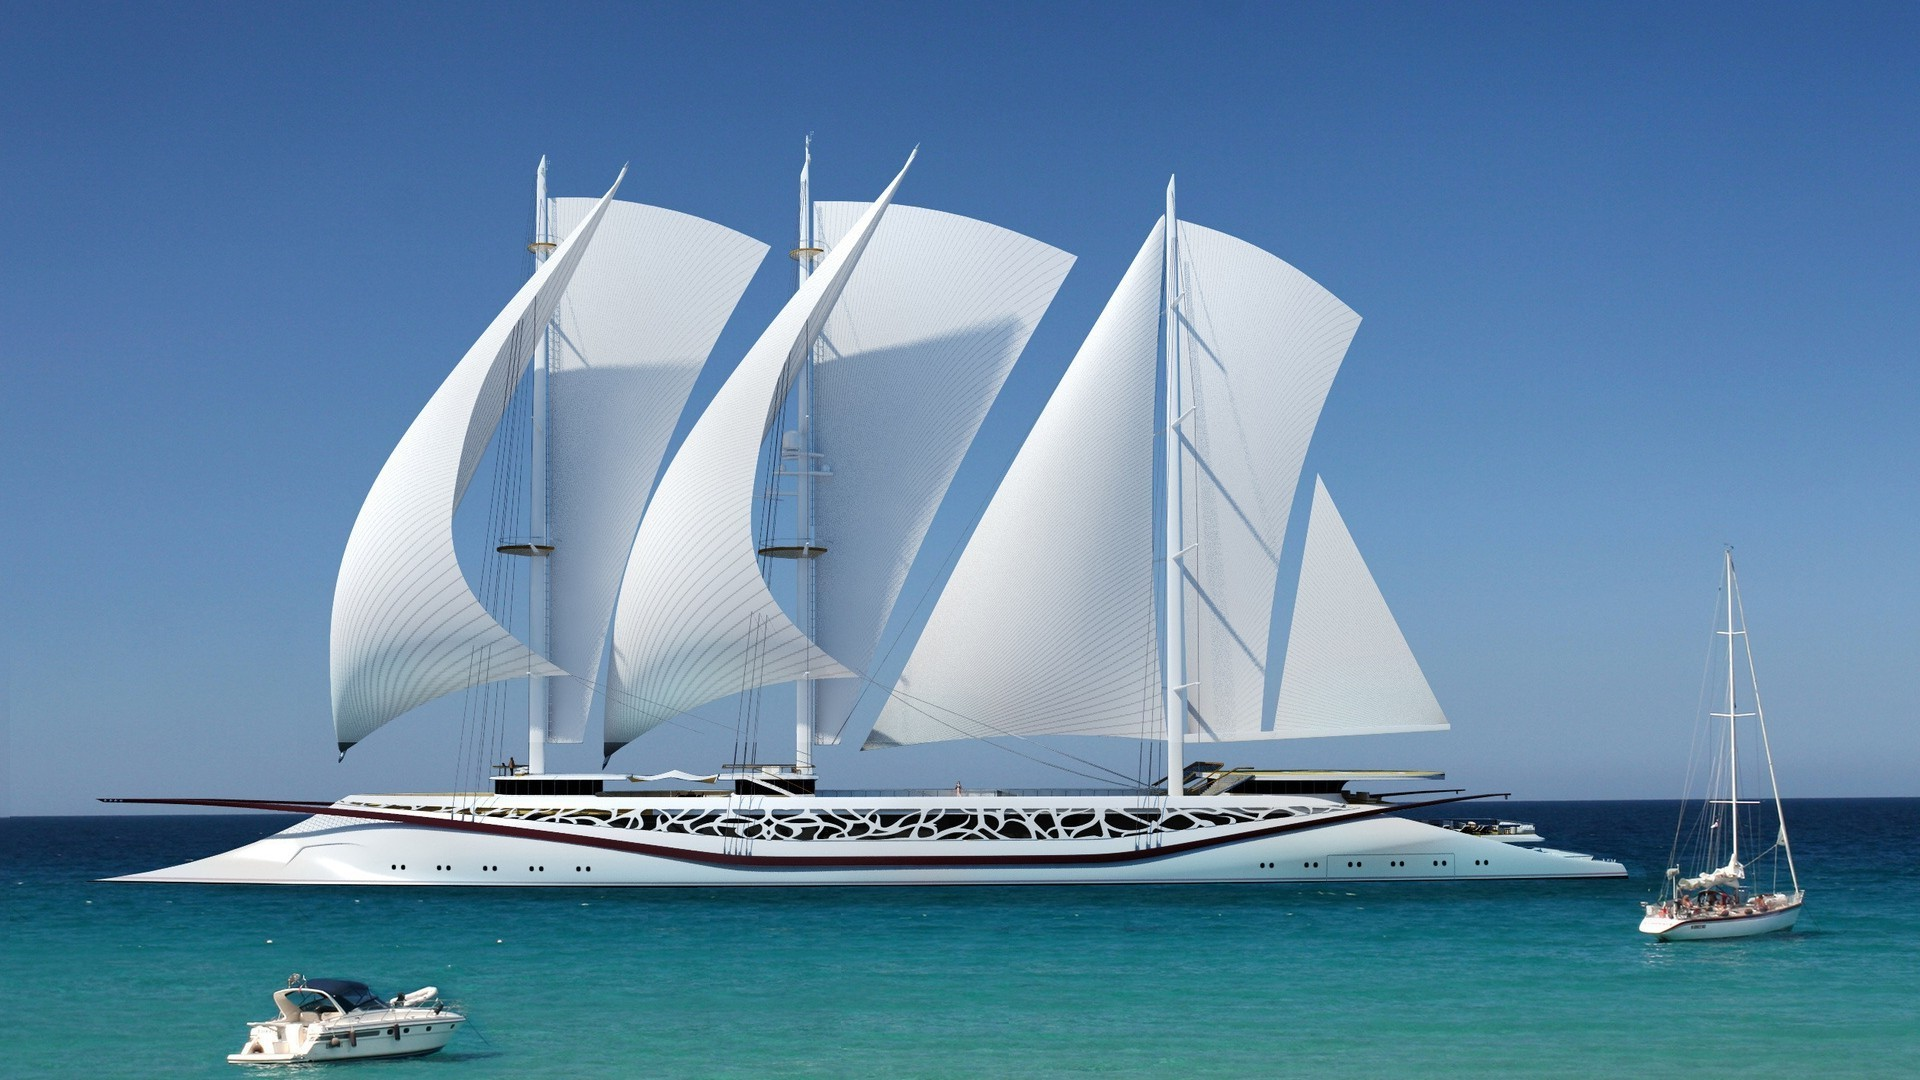 1920x1080 nature, Sea, Ship, Sailing Ship, Yacht, Horizon, Modern, Sky Wallpapers HD  / Desktop and Mobile Backgrounds